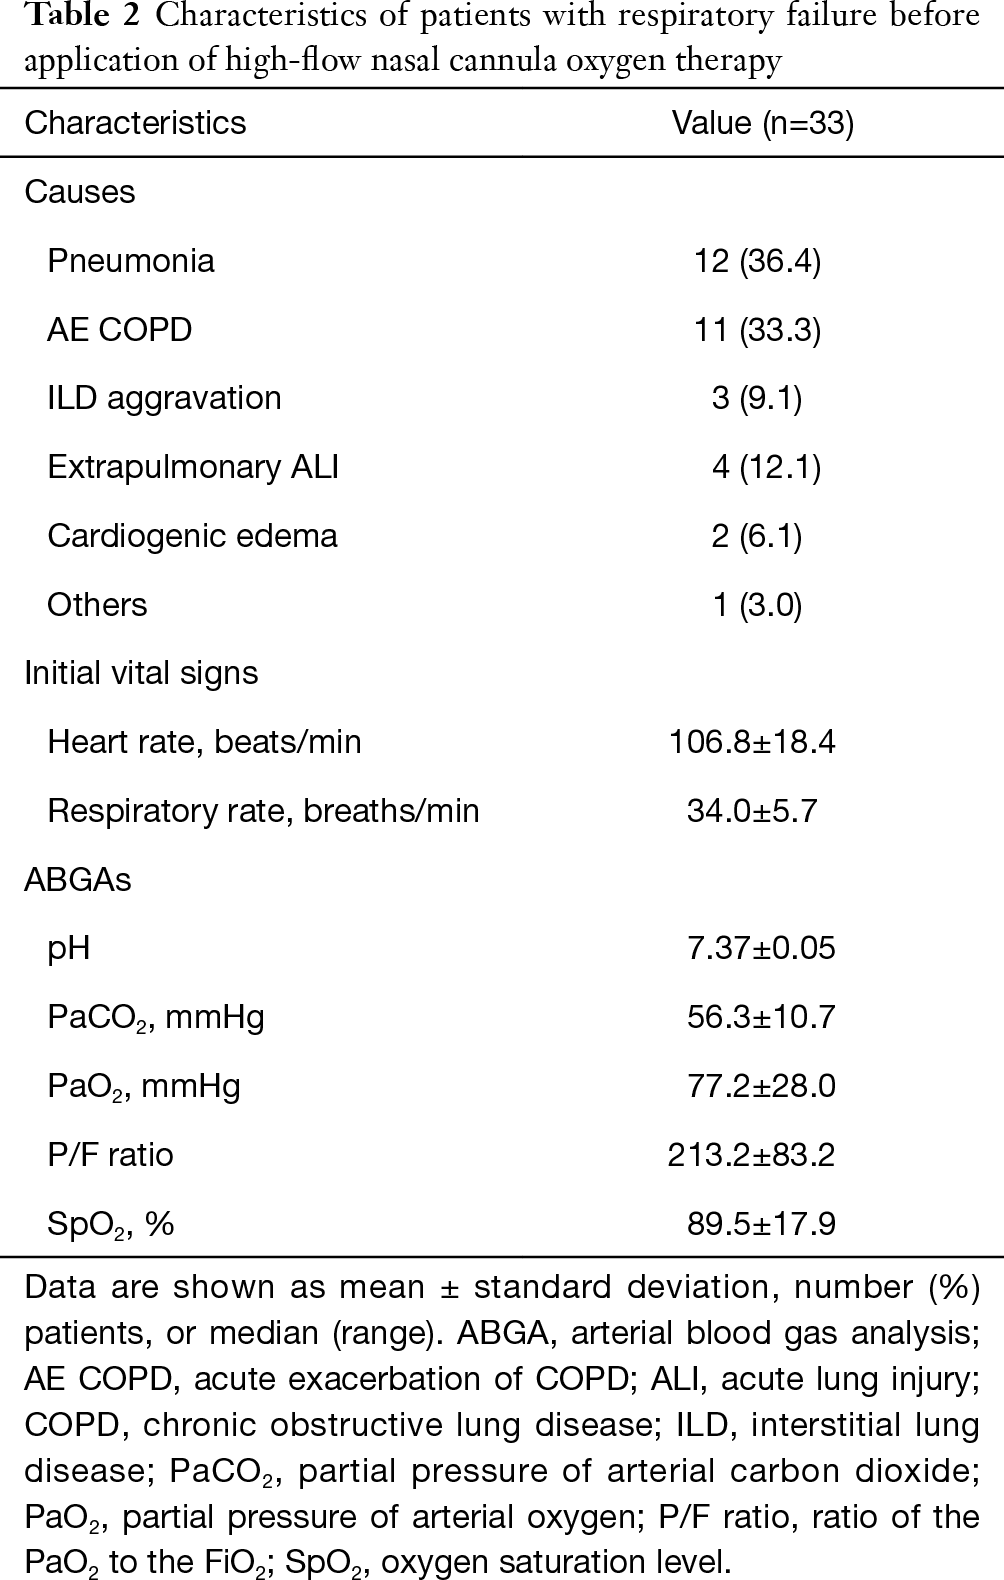 Effectiveness Of High Flow Nasal Cannula Oxygen Therapy For Acute